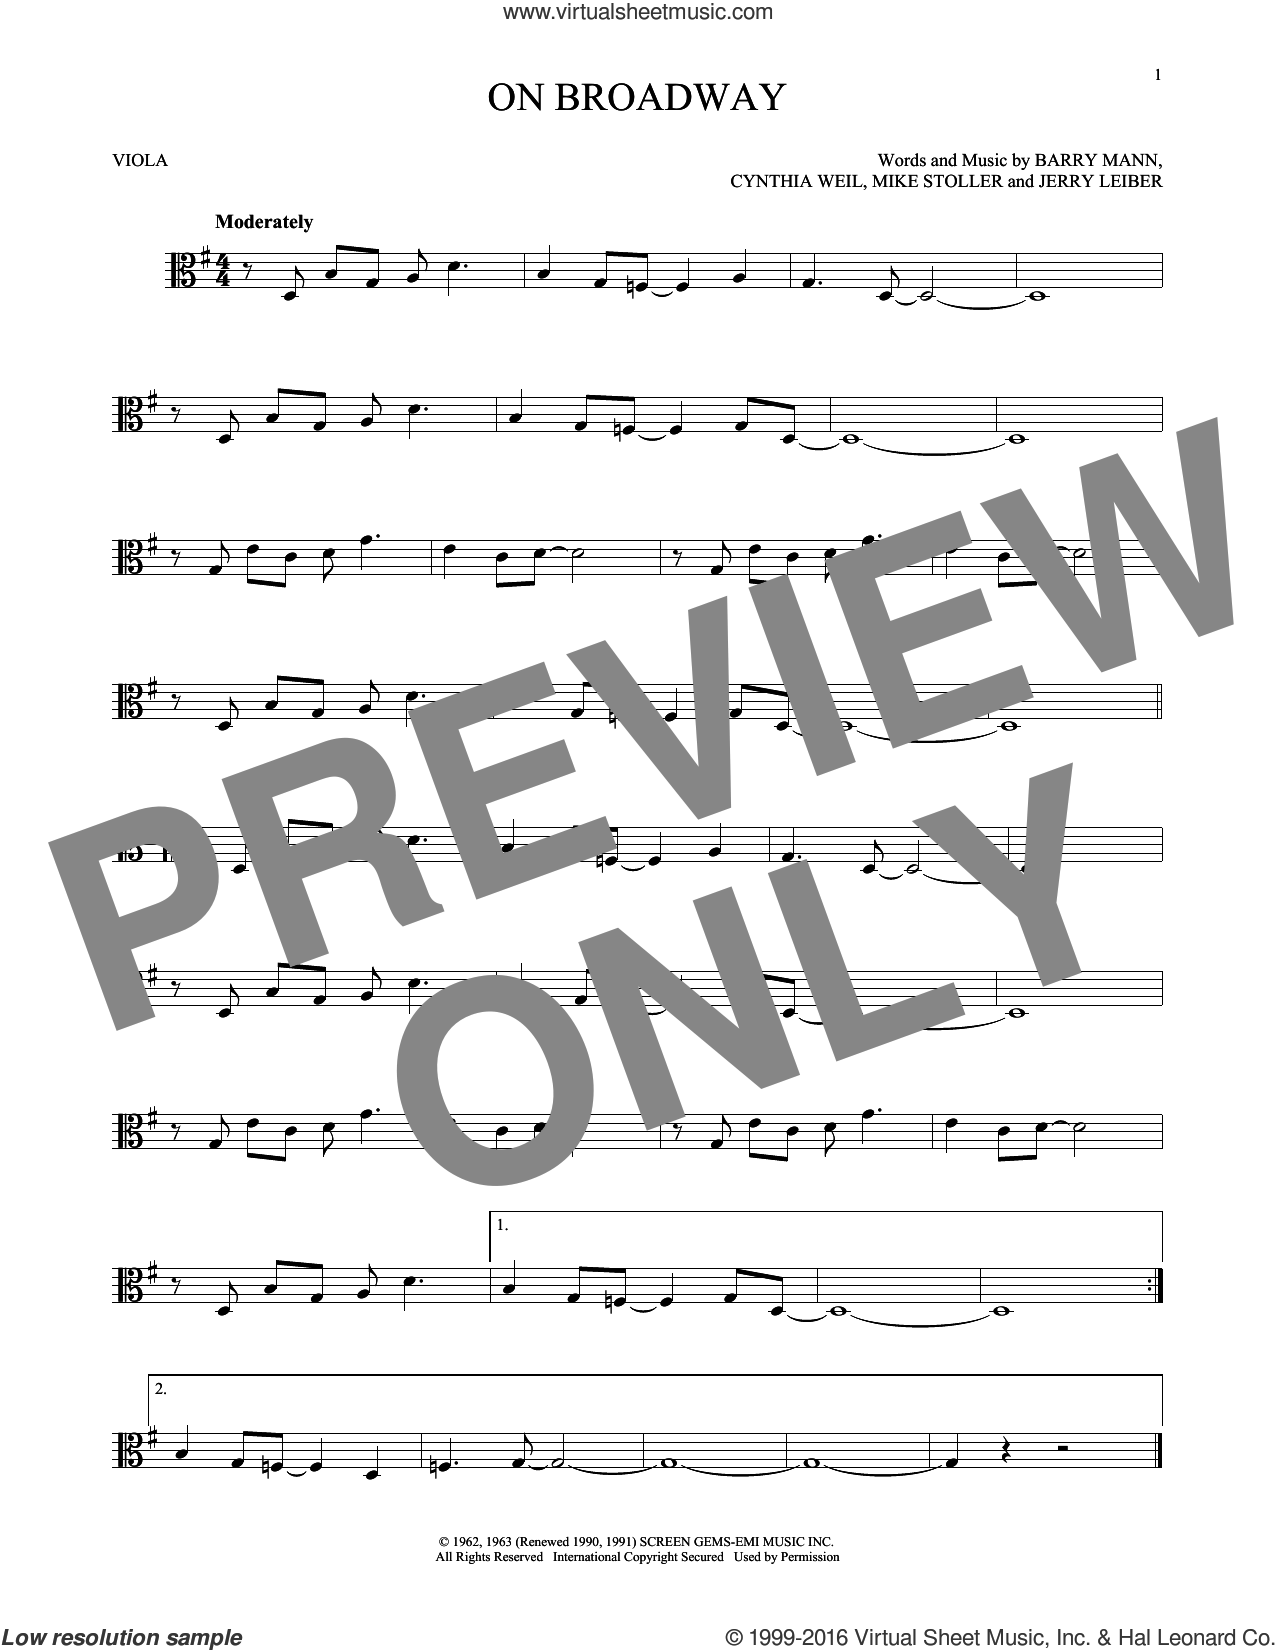 On Broadway sheet music for viola solo by George Benson, The Drifters, Barry Mann, Cynthia Weil, Jerry Leiber and Mike Stoller, intermediate skill level